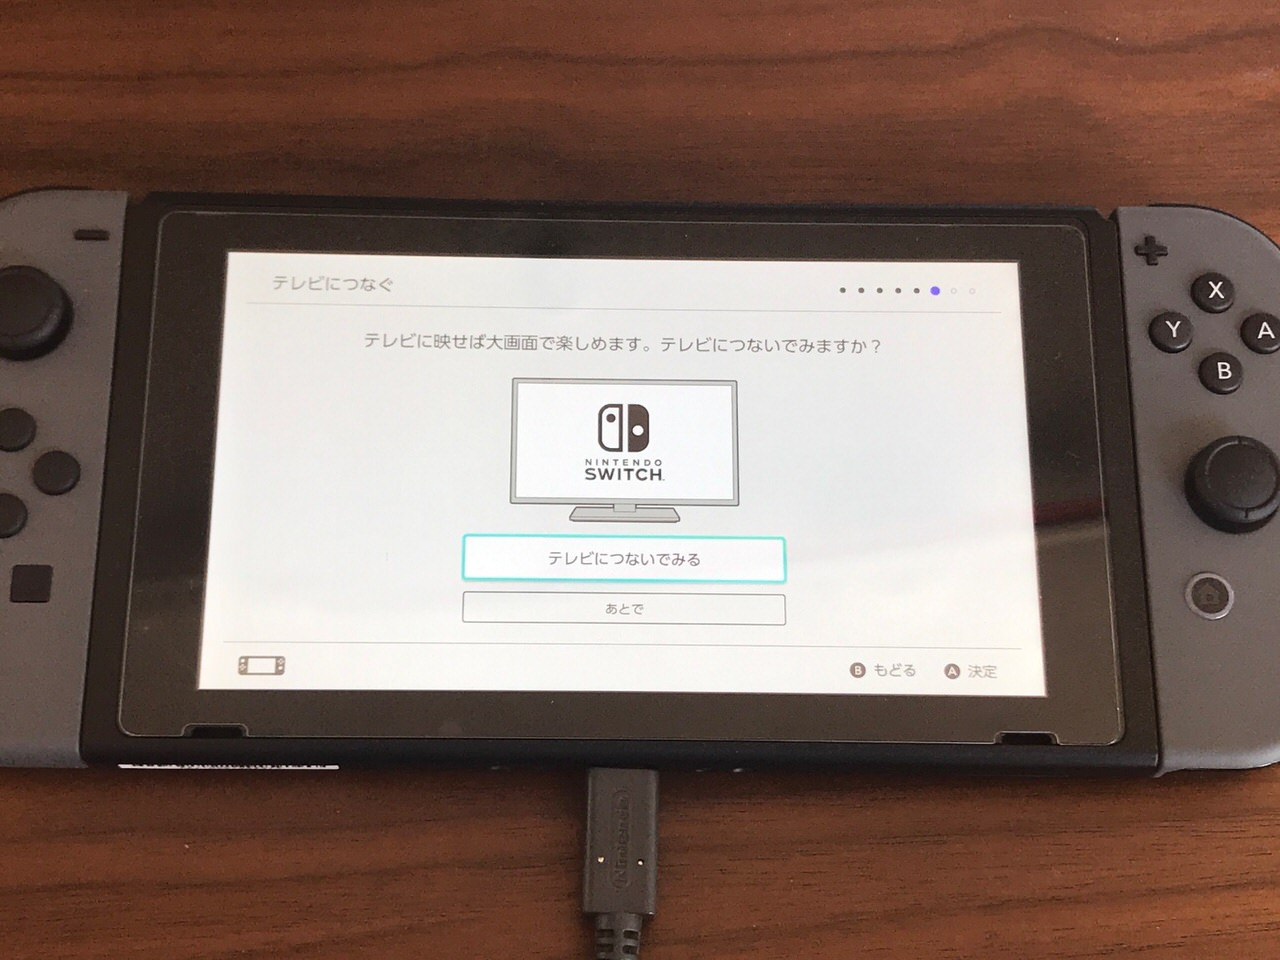 Nintendo switch setup 6764